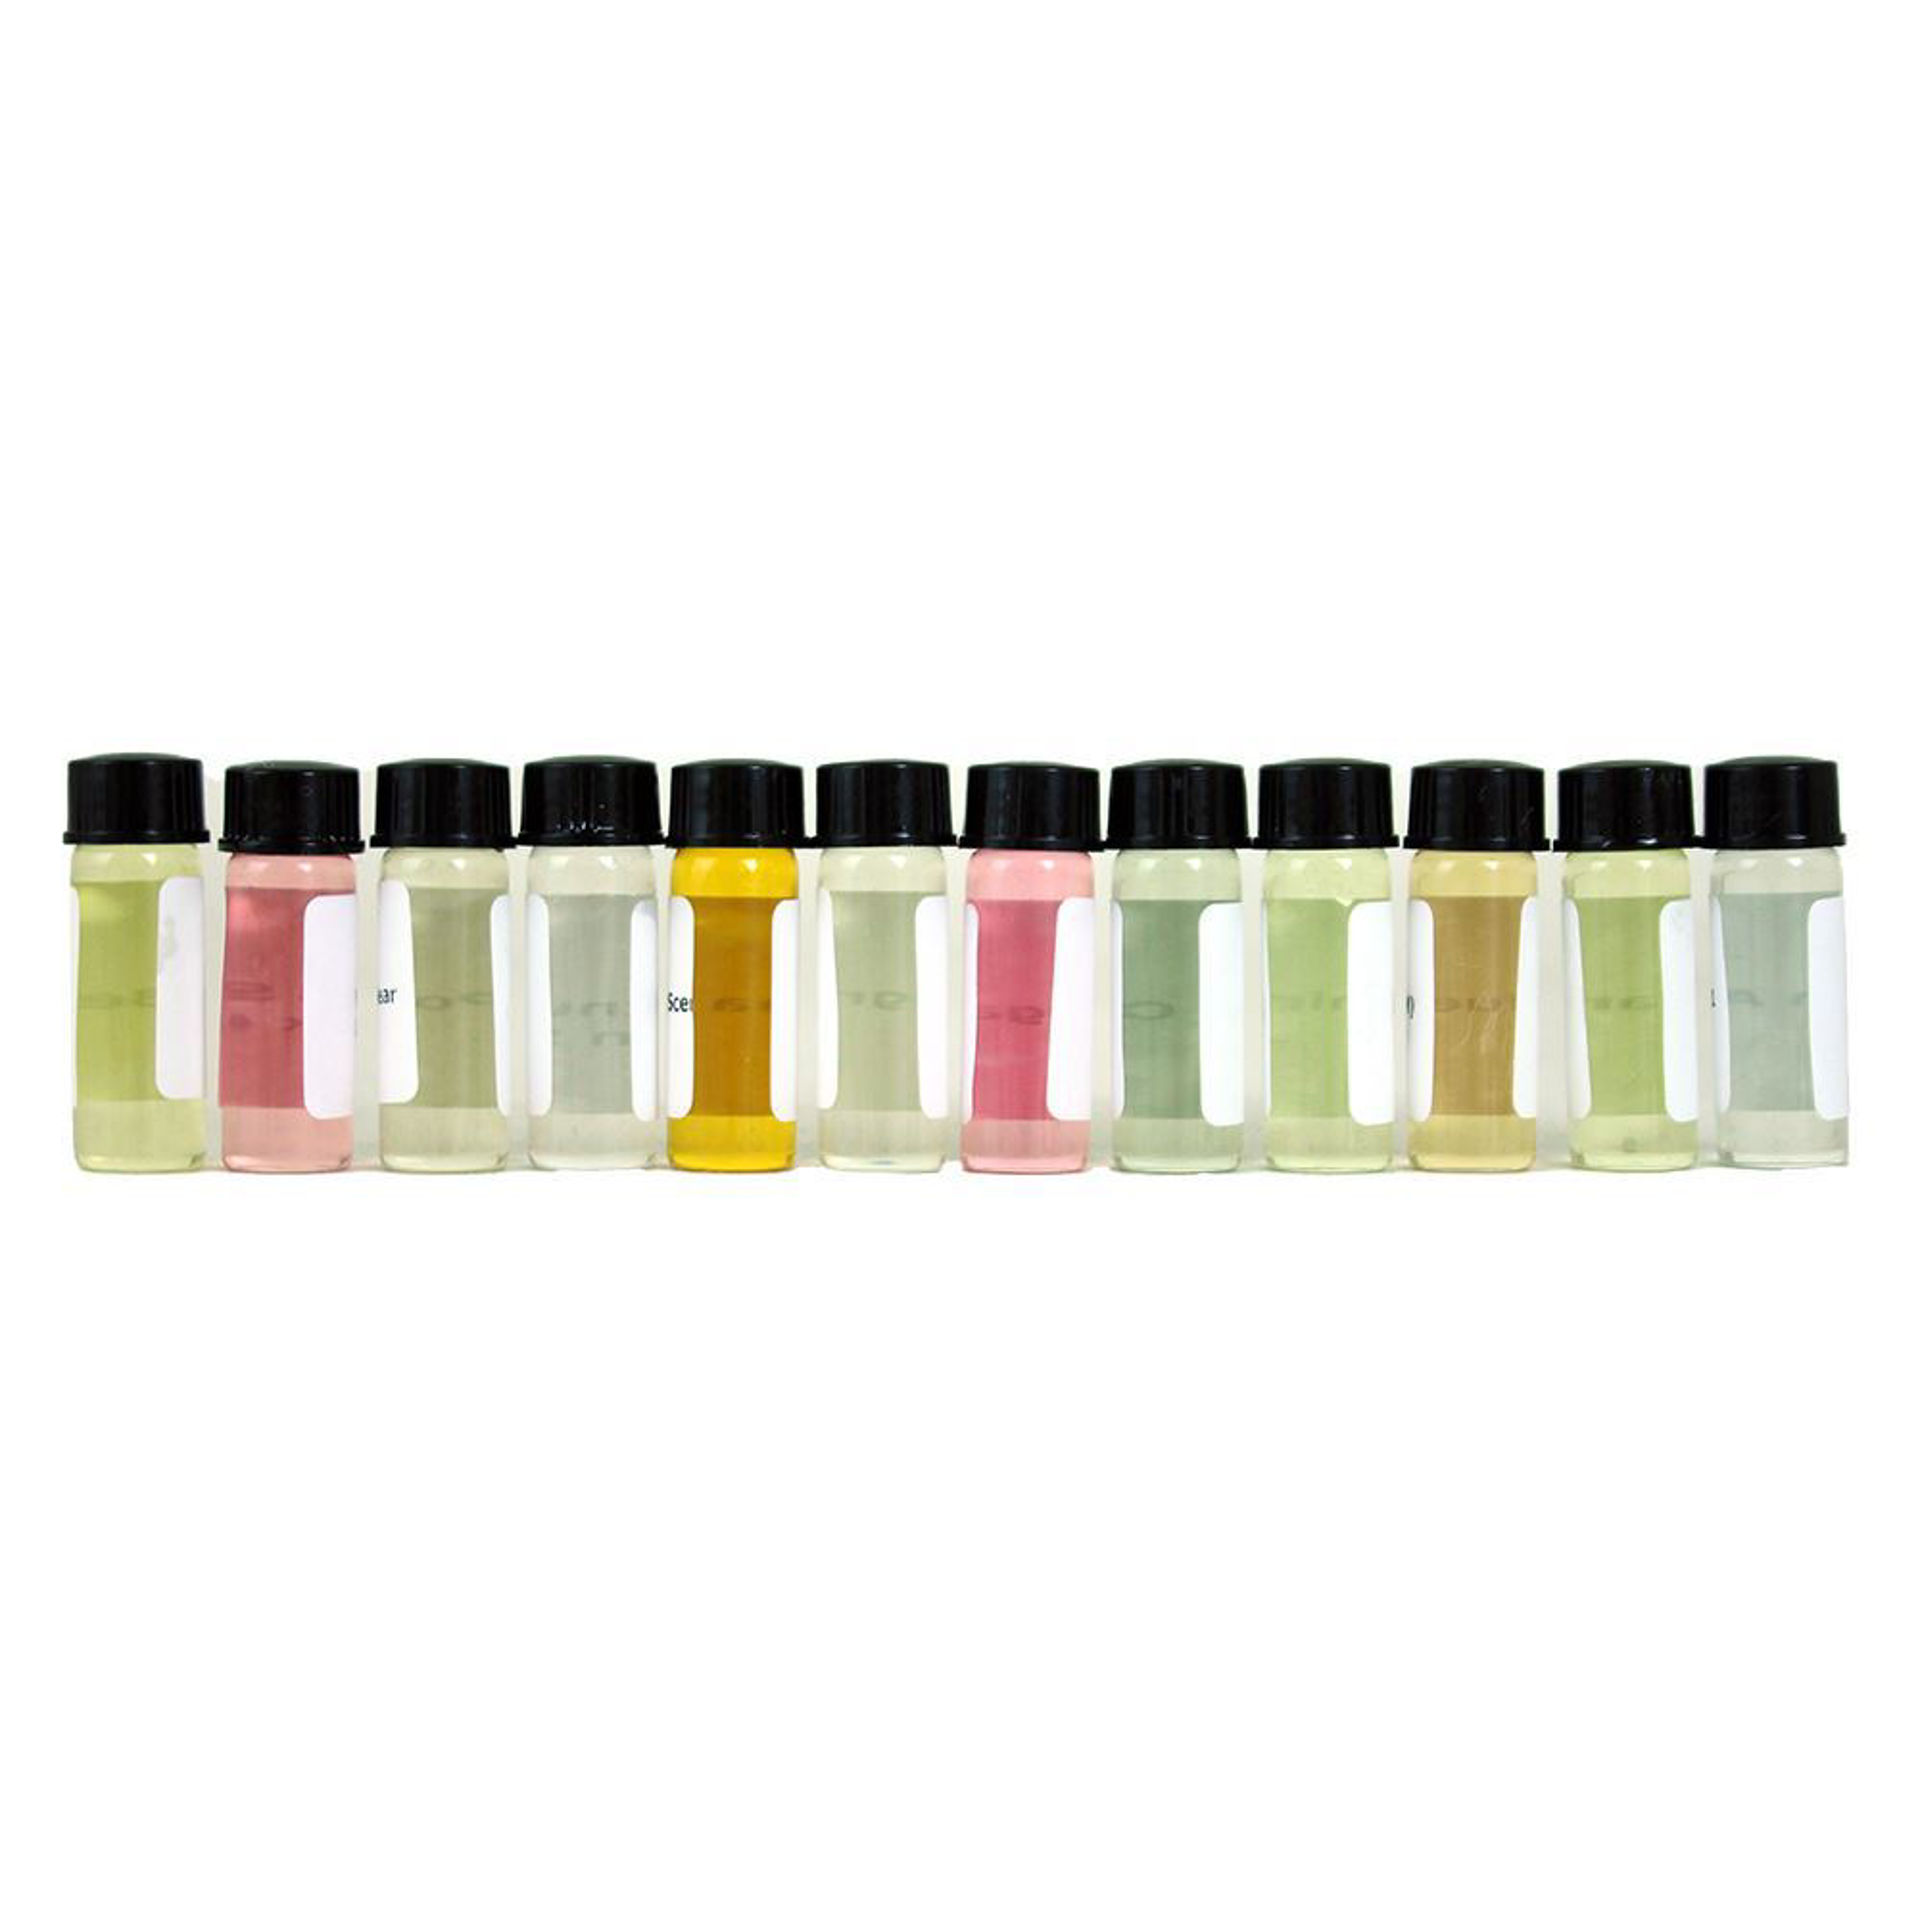 Picture of Set Of 12 Sample Oils - Dram SET-C